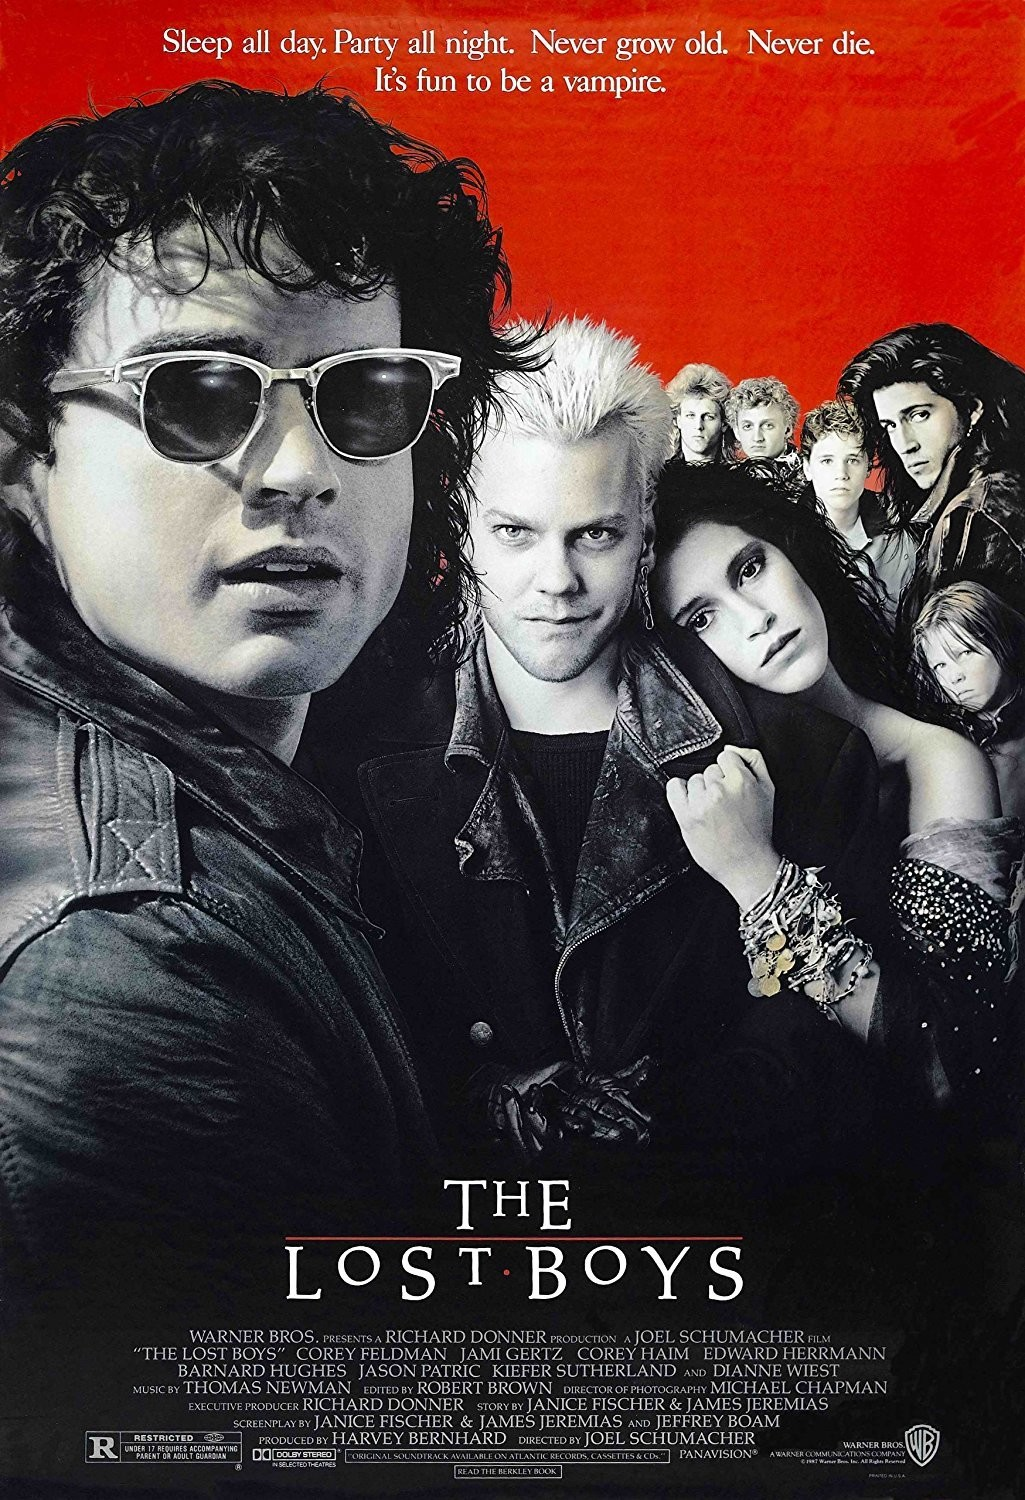 THE LOST BOYS [Week Long Engagement]